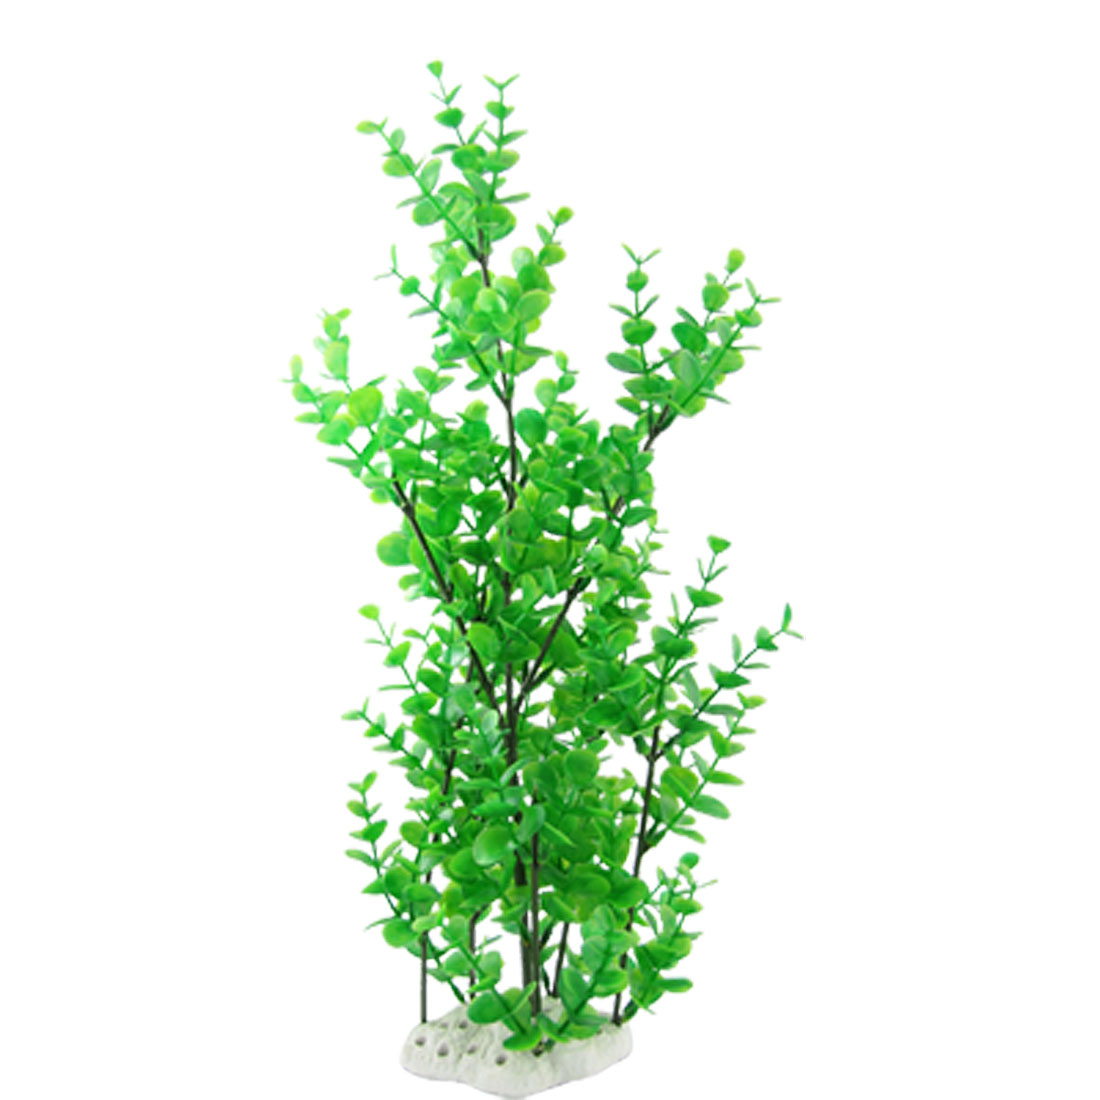 Fish Tank Aquascaping Green Round Leaves Plastic Plant Ornament